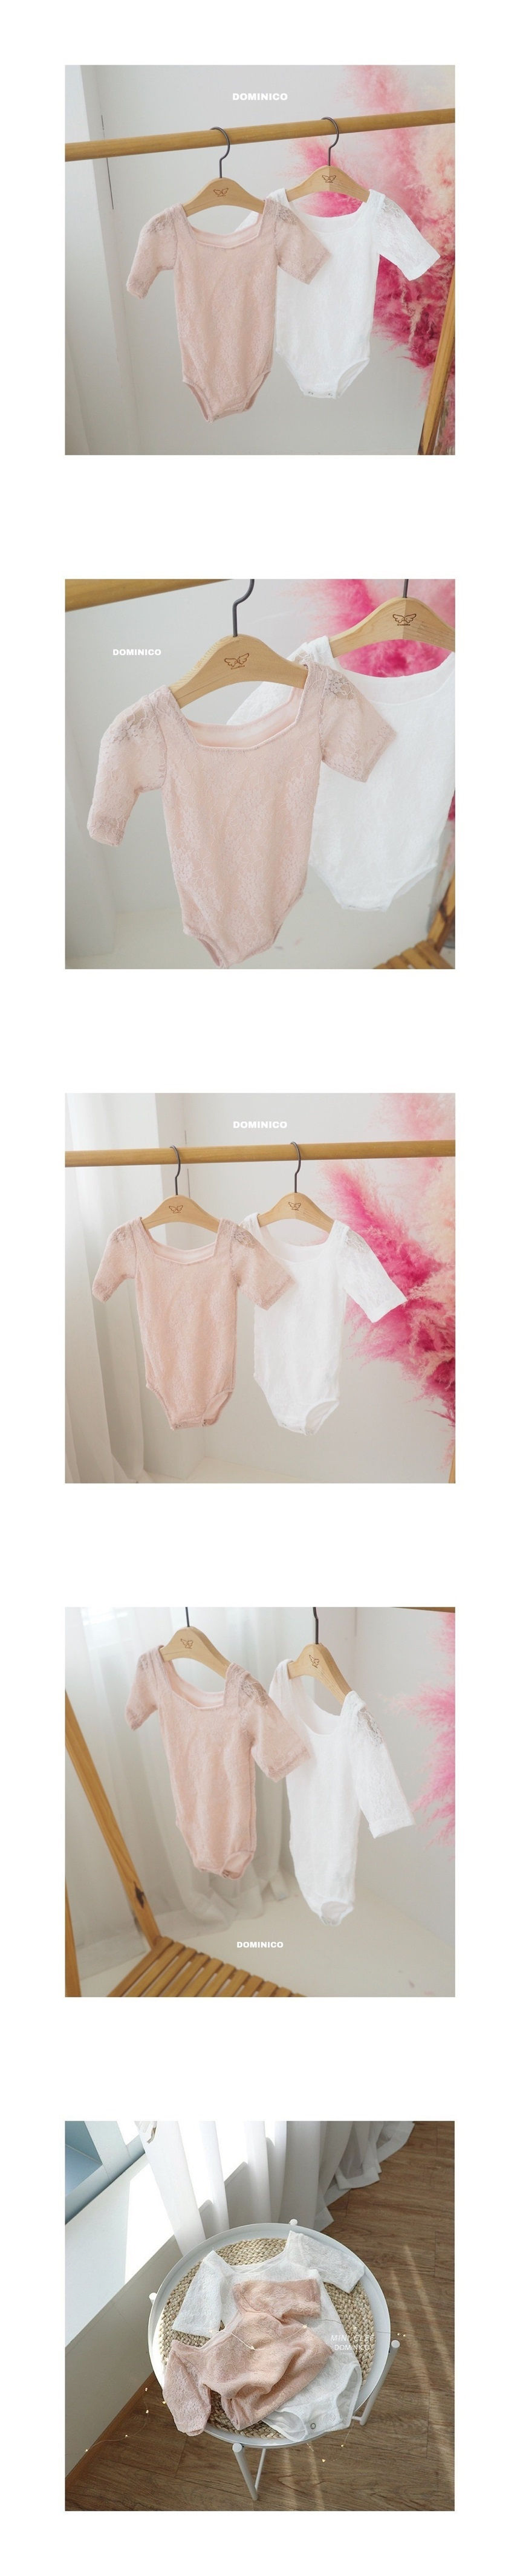 MINI CLEF - Korean Children Fashion - #Kfashion4kids - Lace Short Leotard